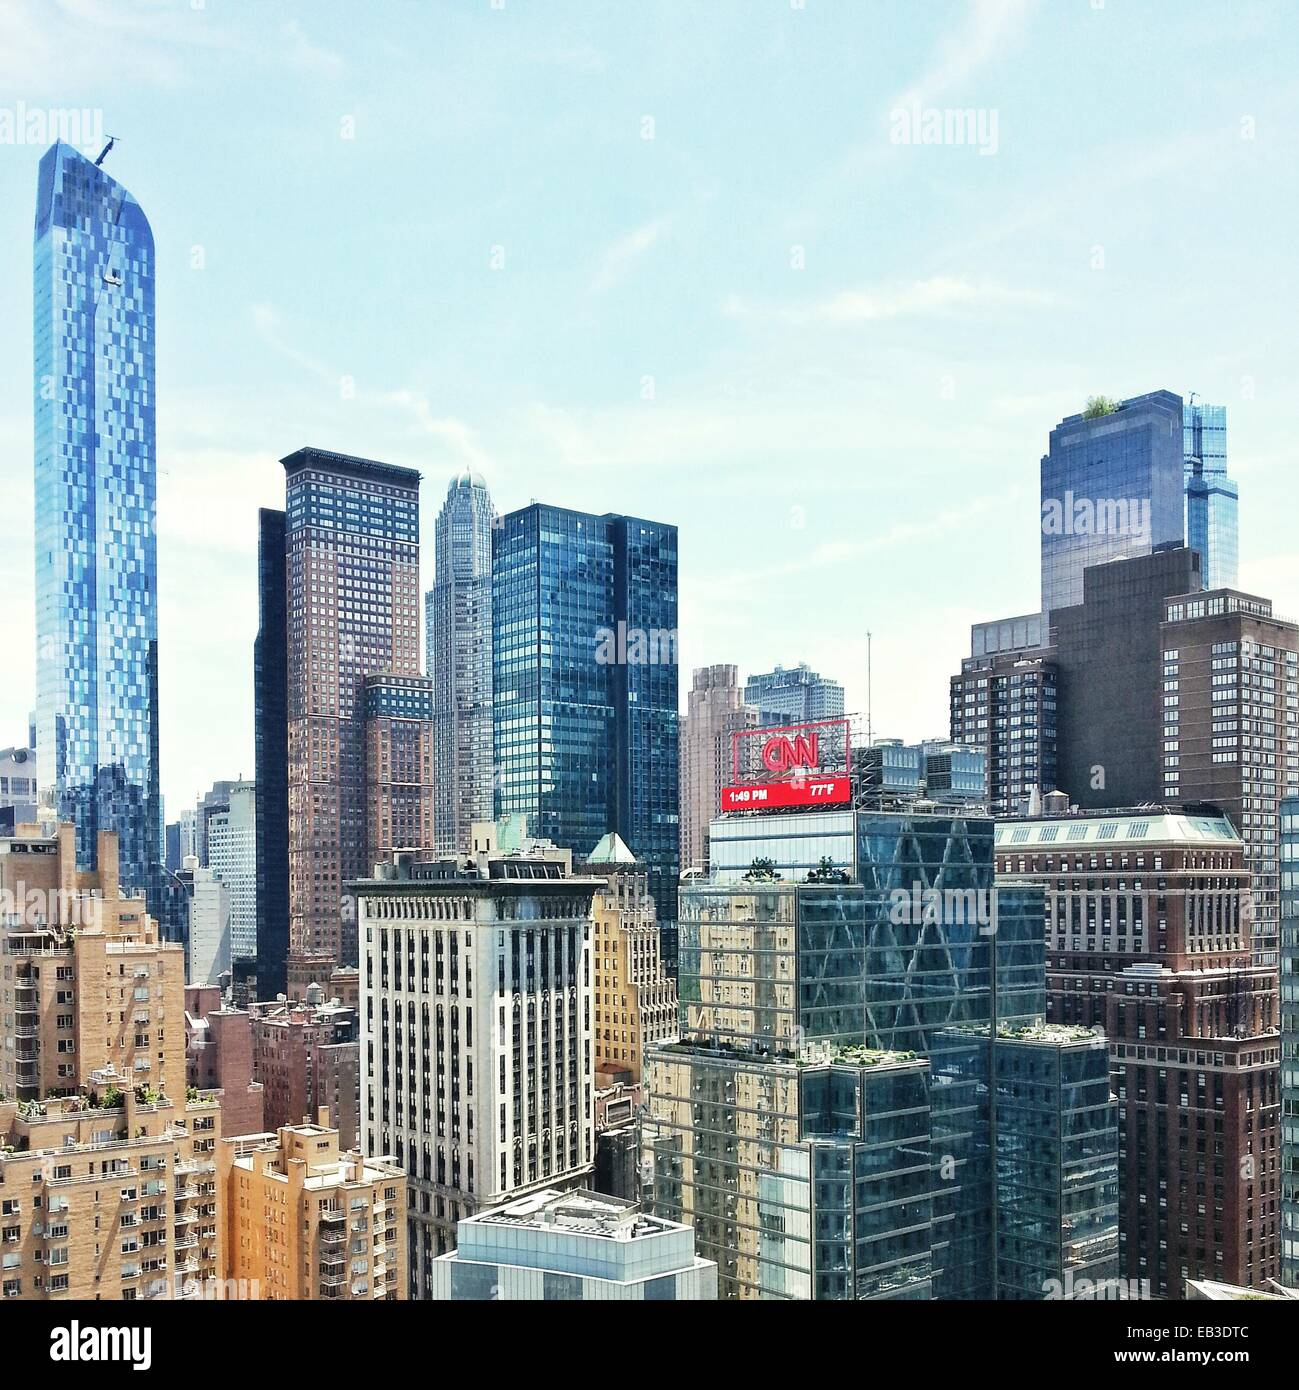 USA, New York State, New York, vue du paysage urbain Photo Stock